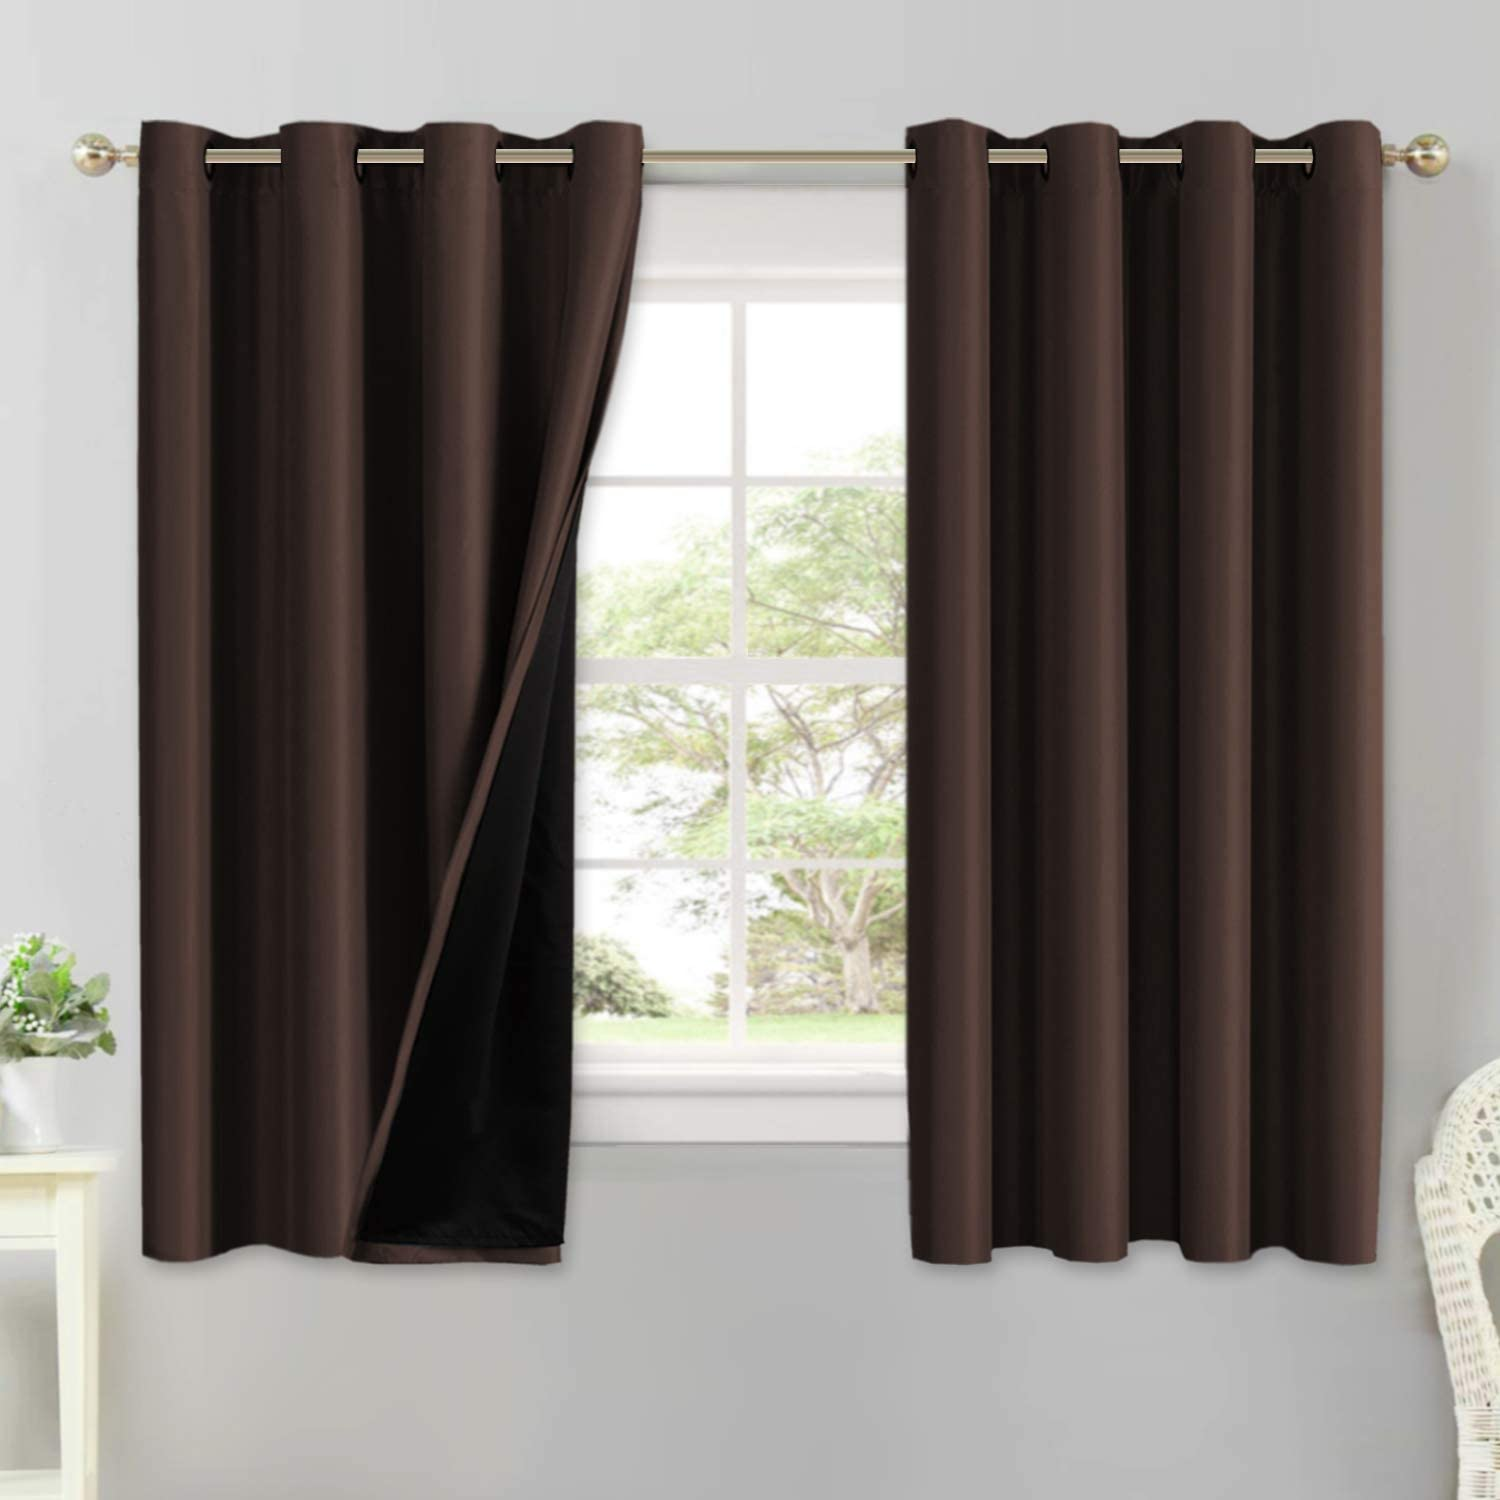 Zhoudd 3D Blackout Curtains Seaside Reed 2/Panels W29/X/L65/Inch Thermal Insulated Eyelet Window Blinds Room Darkening Drapes For Baby Nursery Room